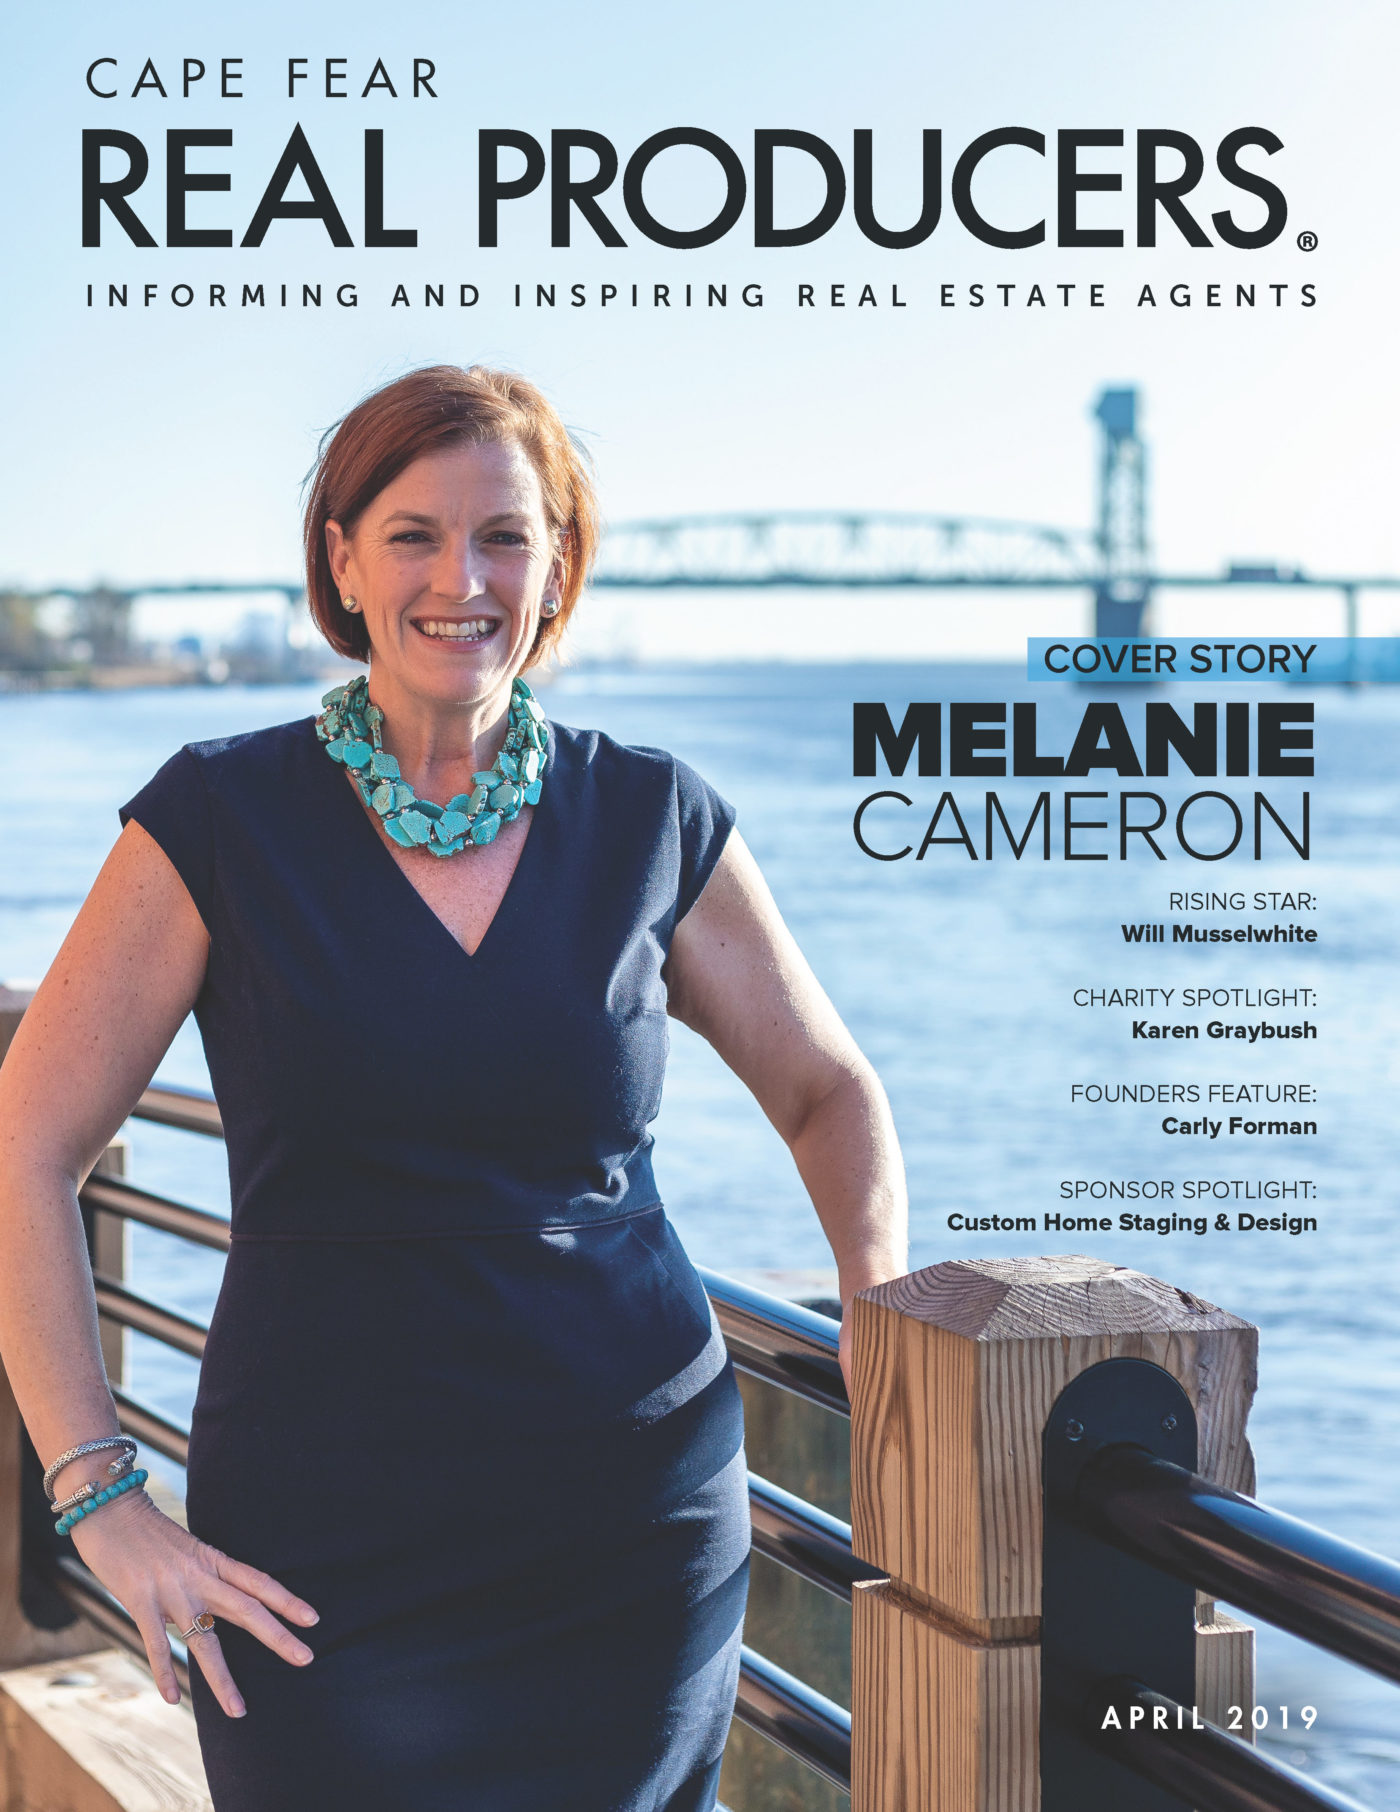 Melanie Cameron in Cape Fear Real Producers